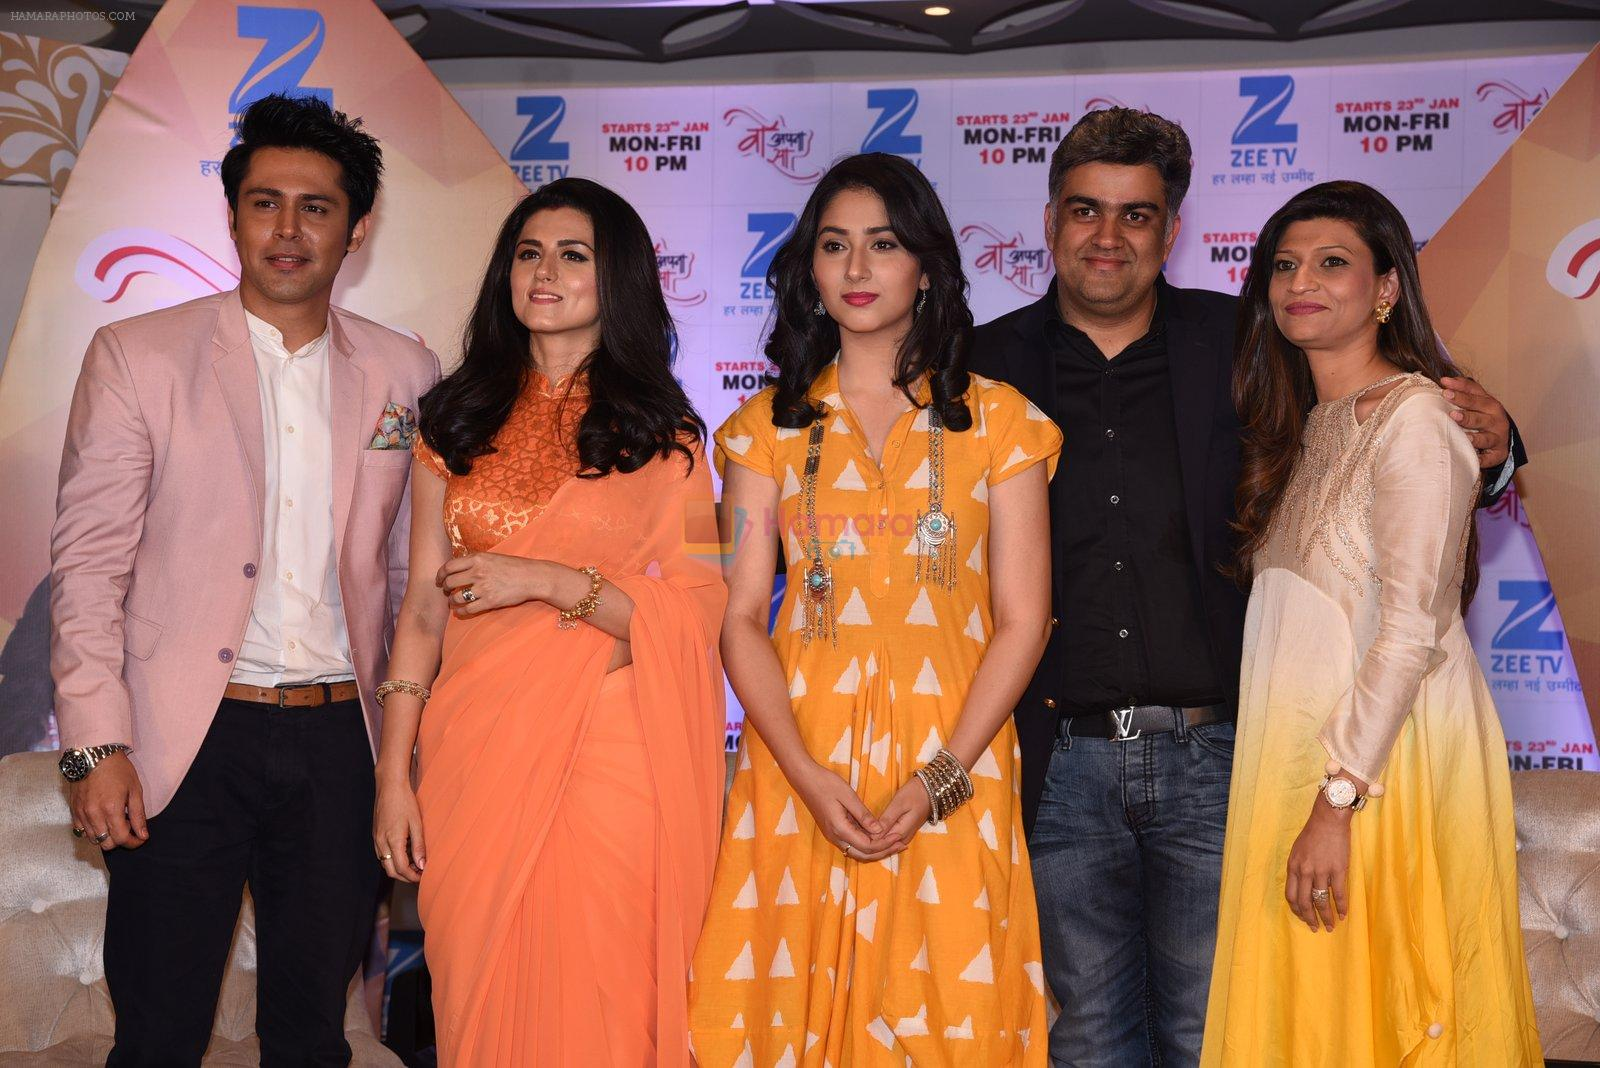 Sudeep Sahir and Disha Parmar, Riddhi Dogra at Woh Apna Sa show for ZEE on 17th Jan 2017